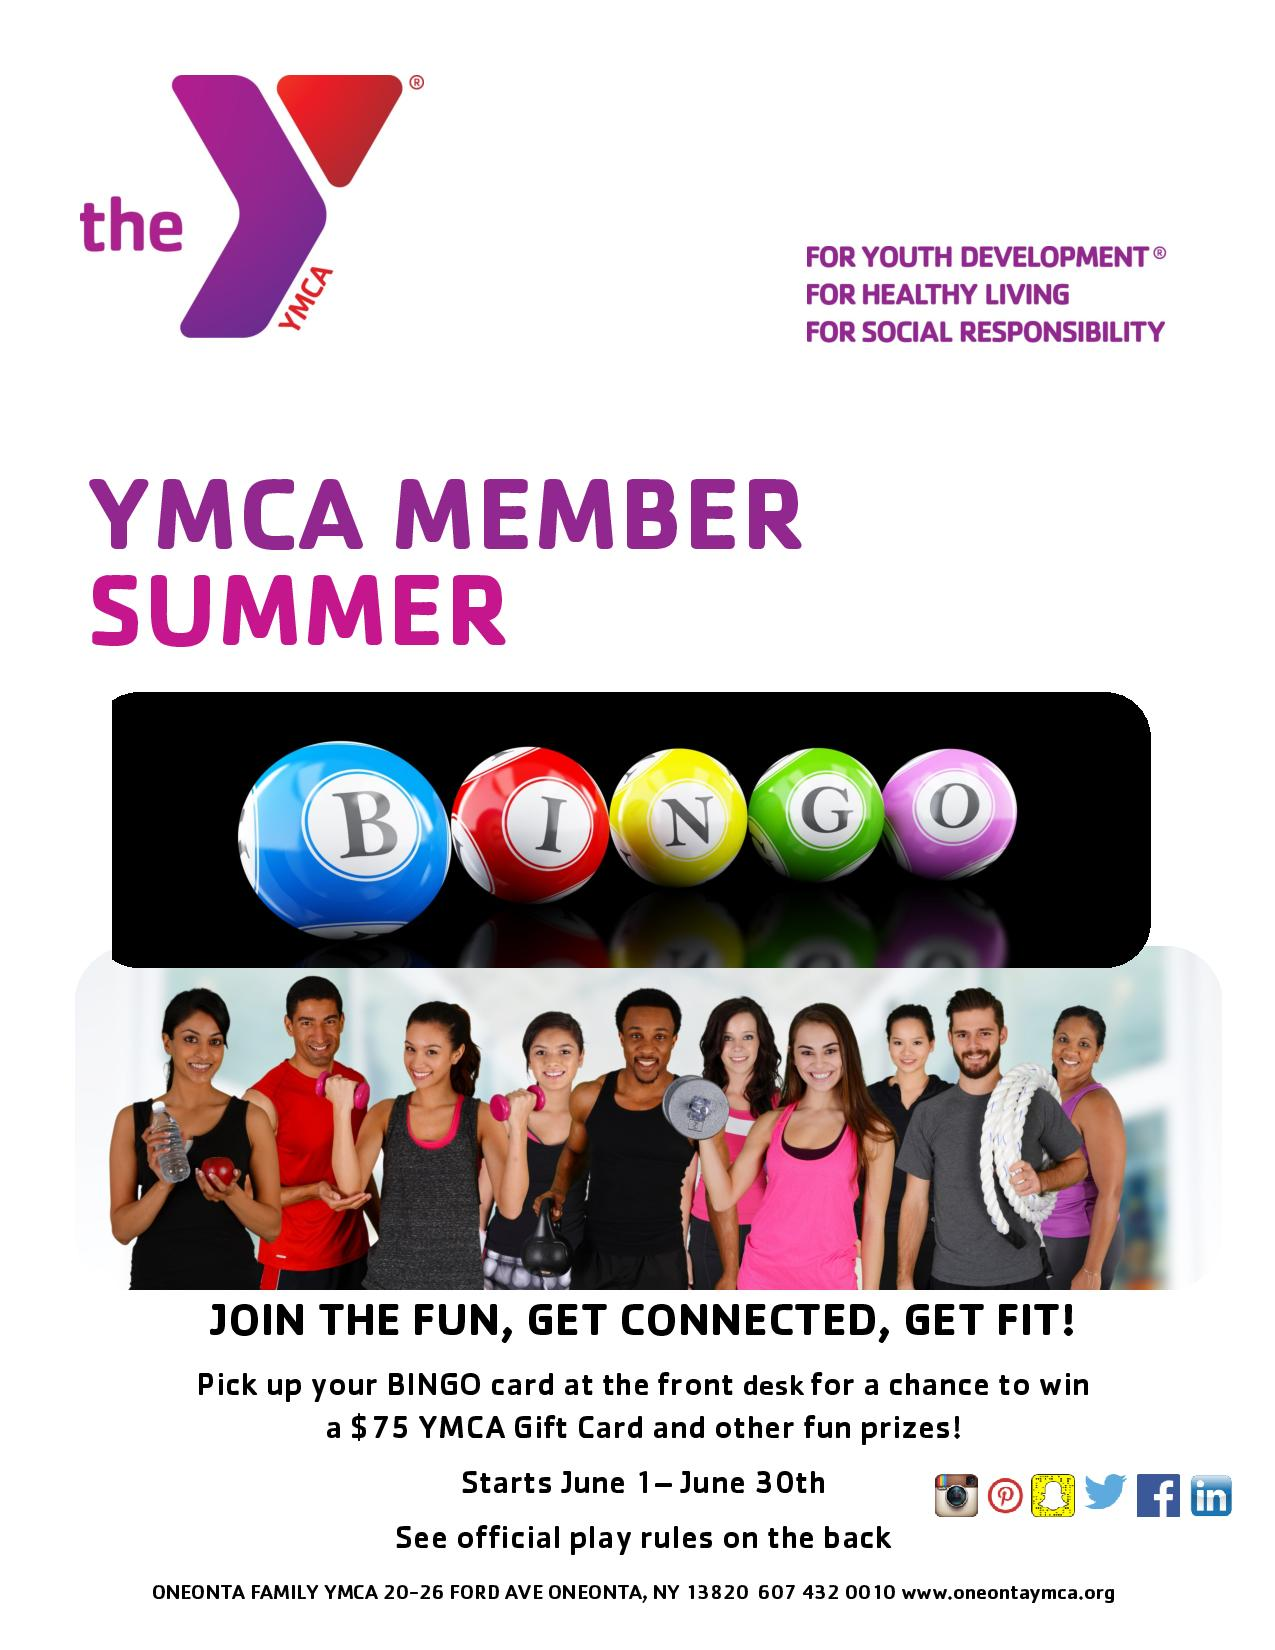 YMCA MEMBER SUMMER BINGO